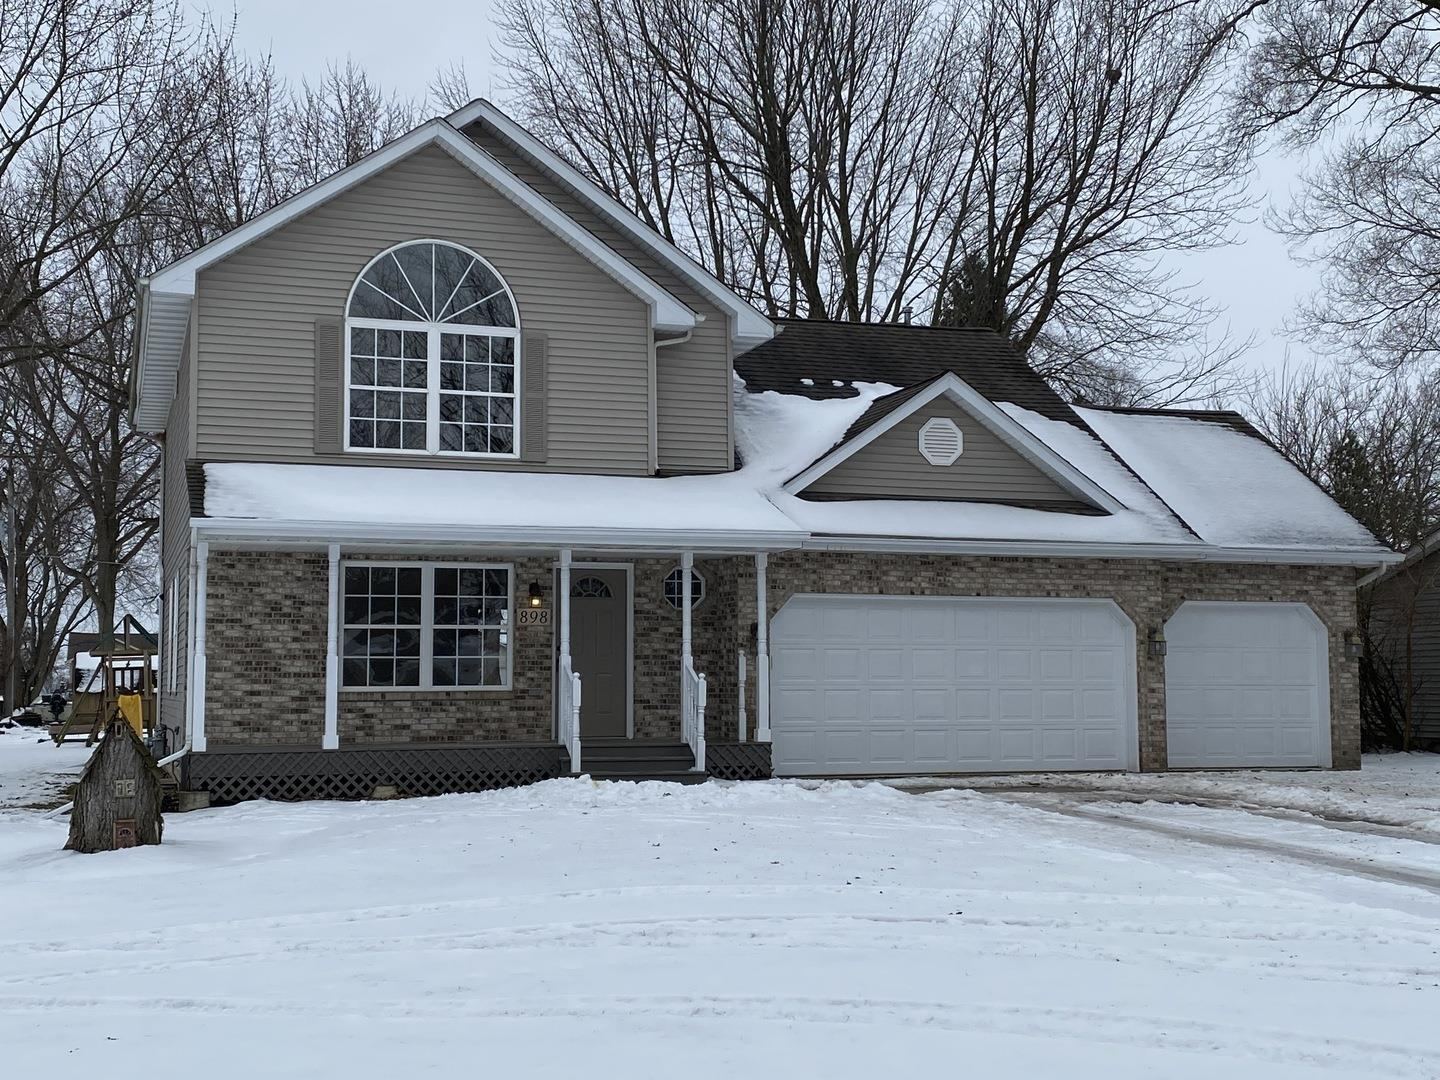 898 SARAH Street, Lake Holiday, IL 60548 - #: 10971256